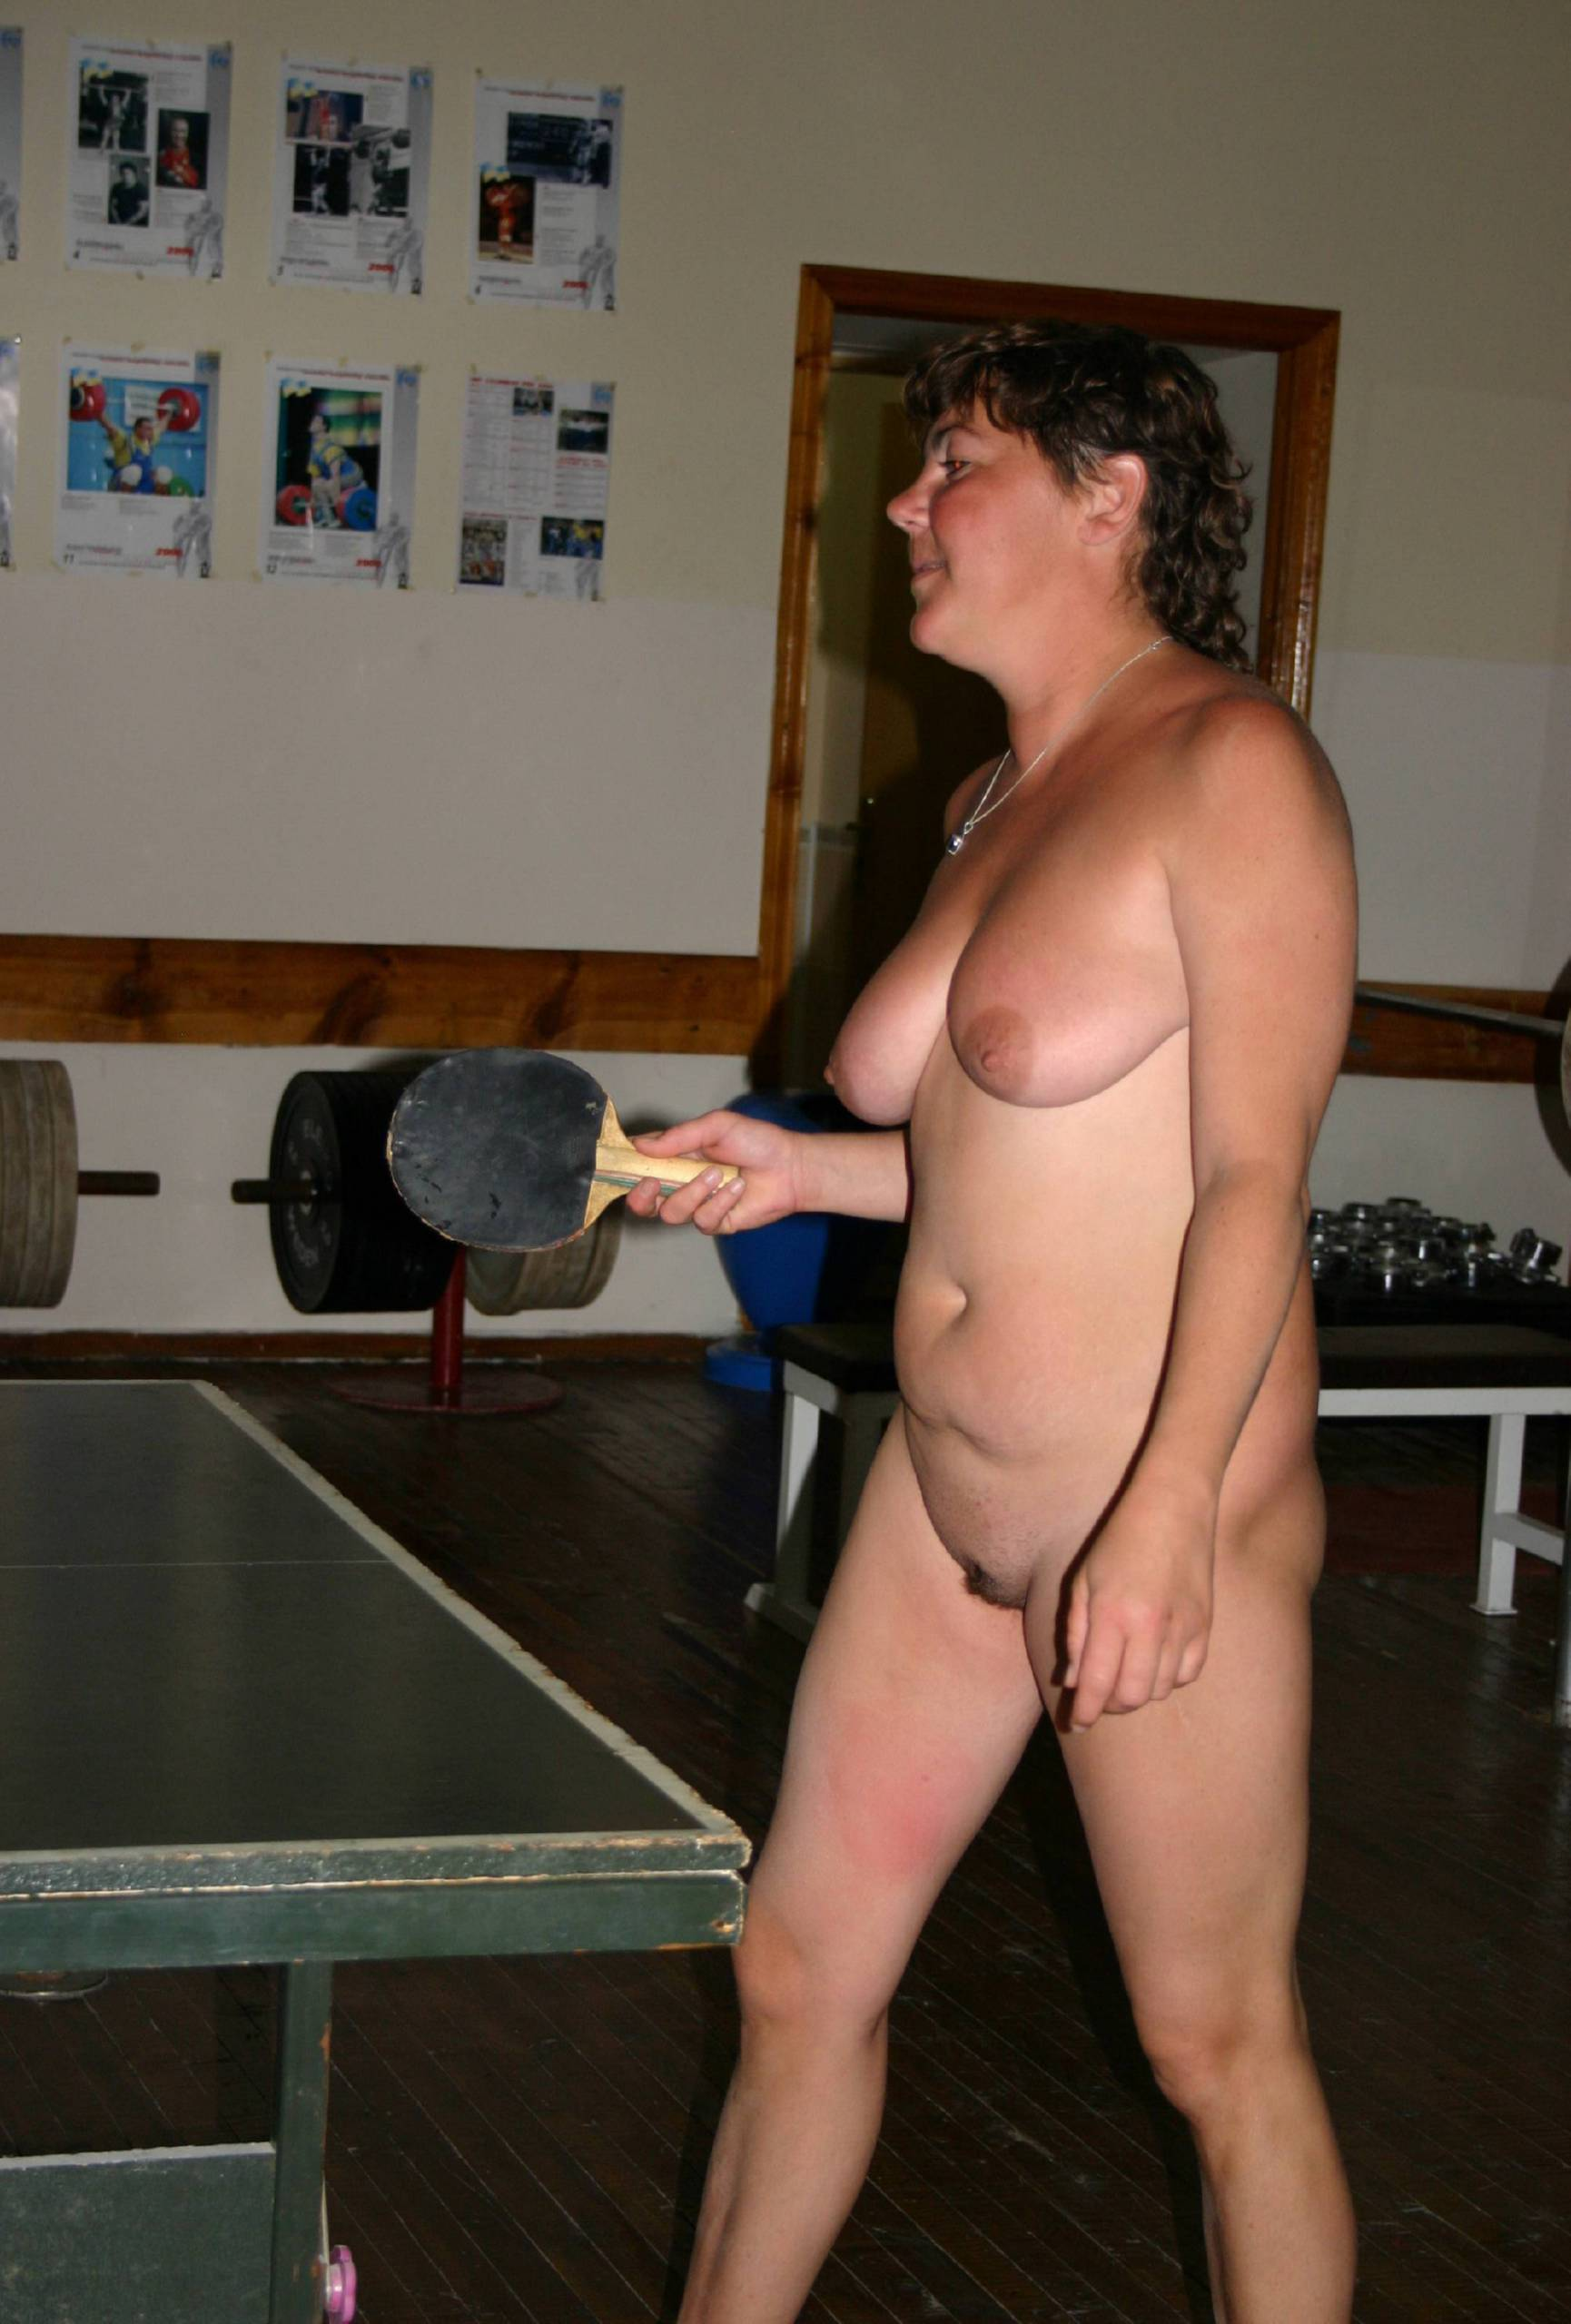 Family Nudist Gym Shots - 1